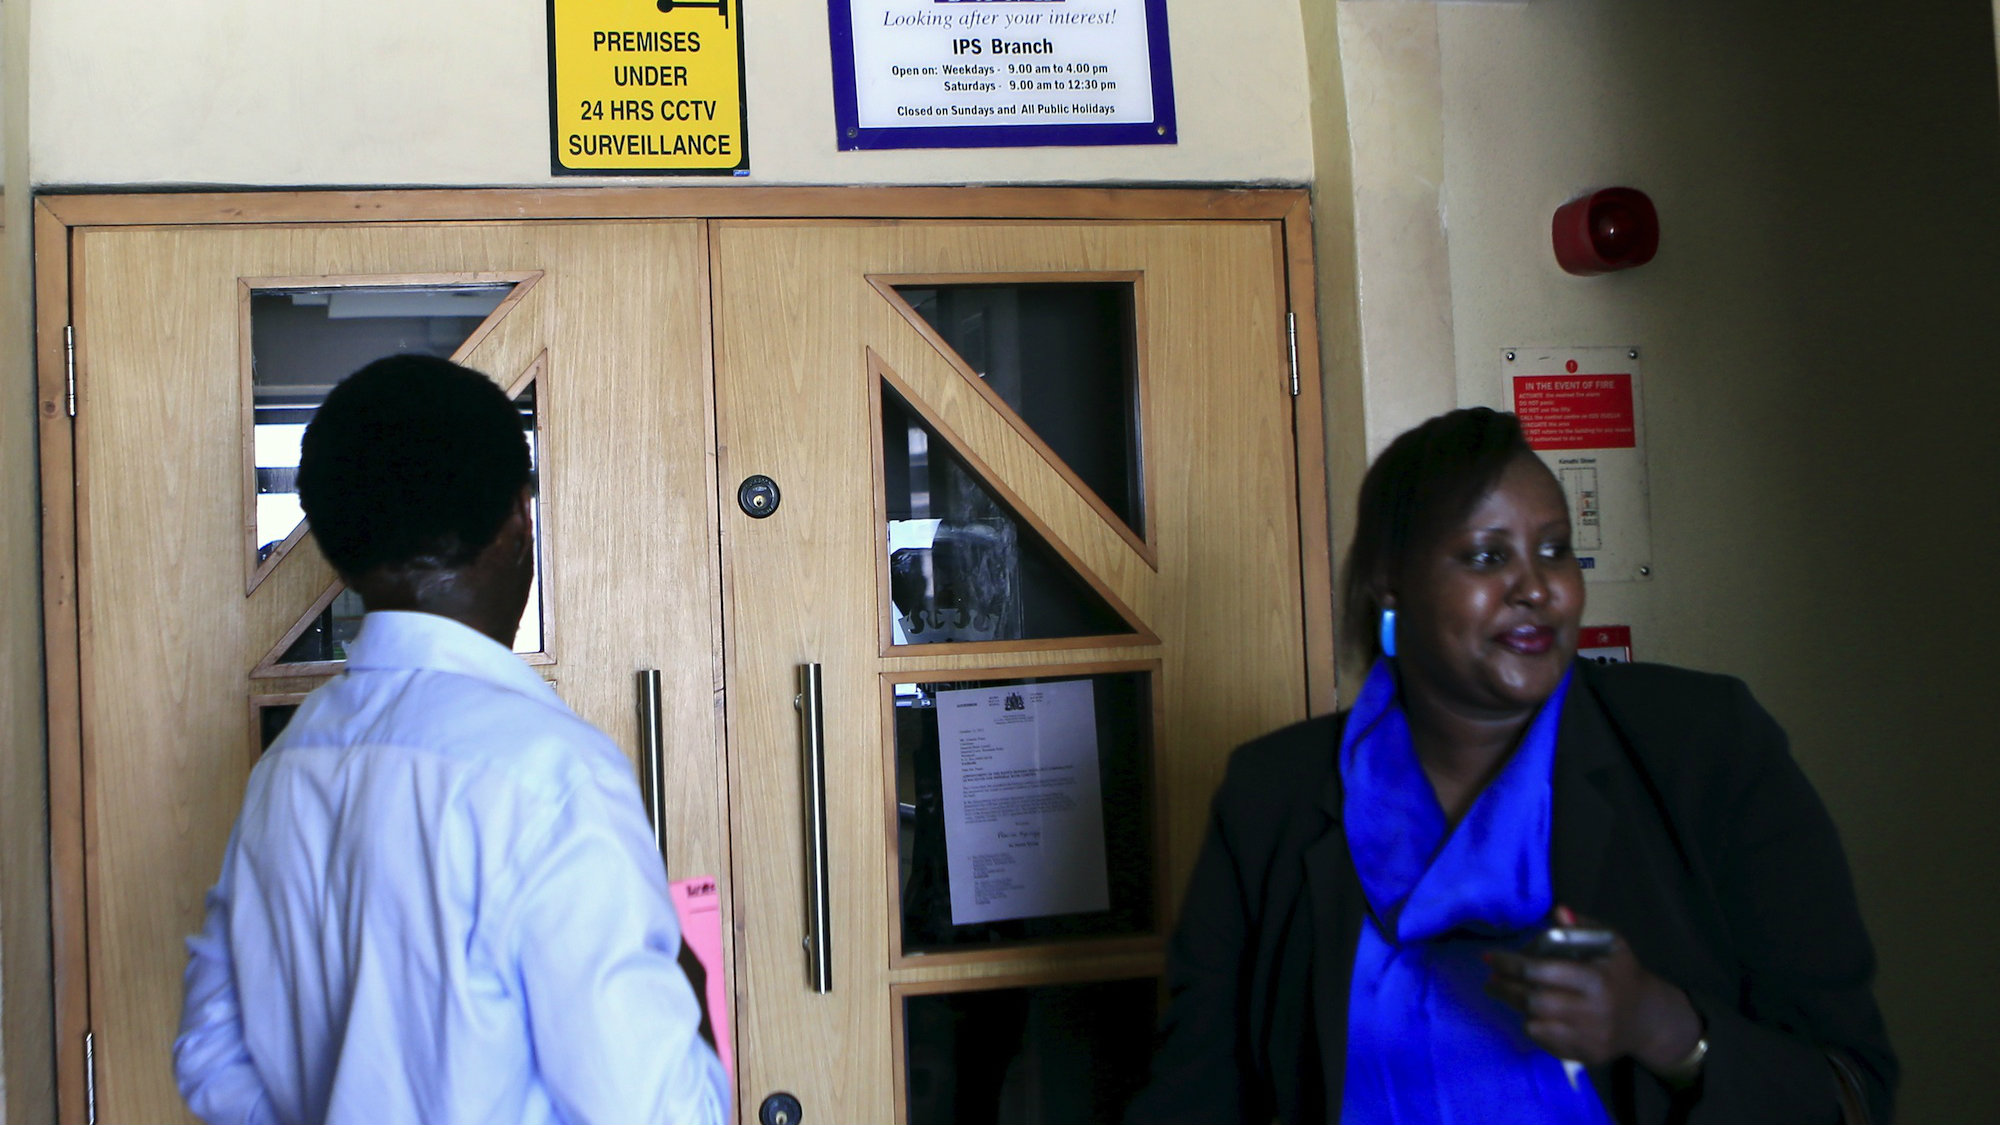 Customers of Imperial Bank wait outside a shuttered branch in Nairobi.